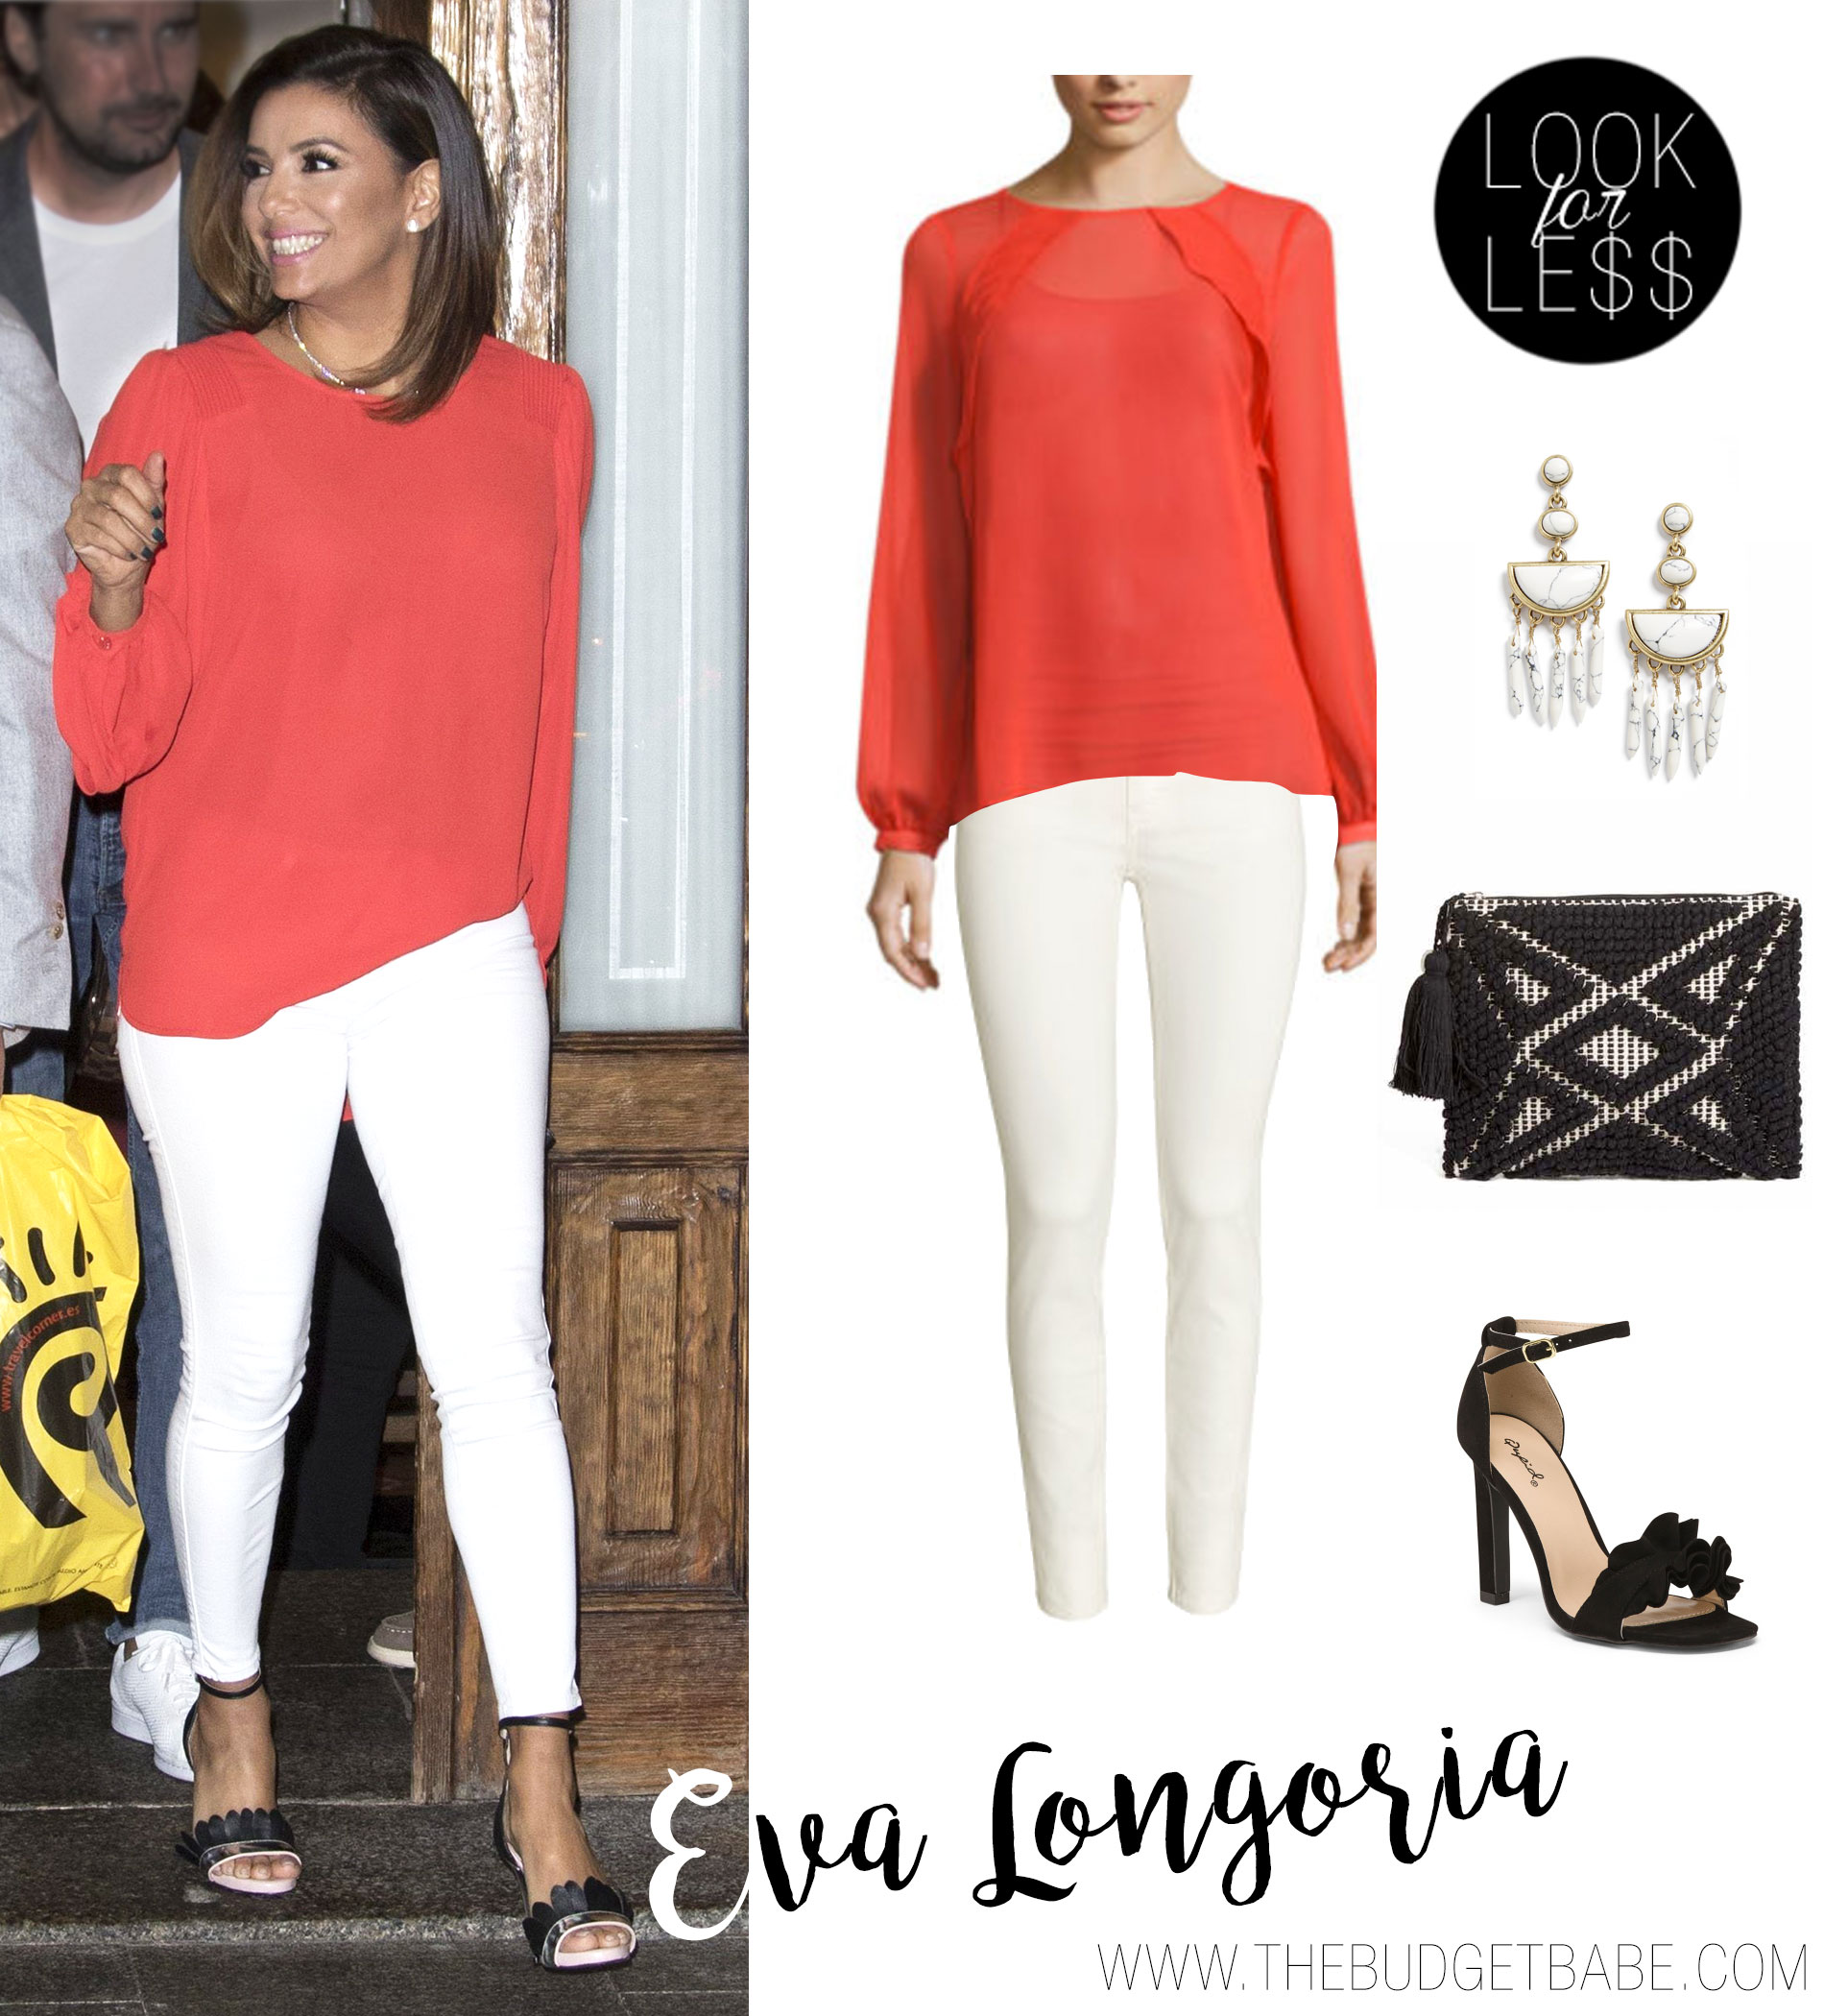 Eva Longoria wears a coral blouse with white pants.